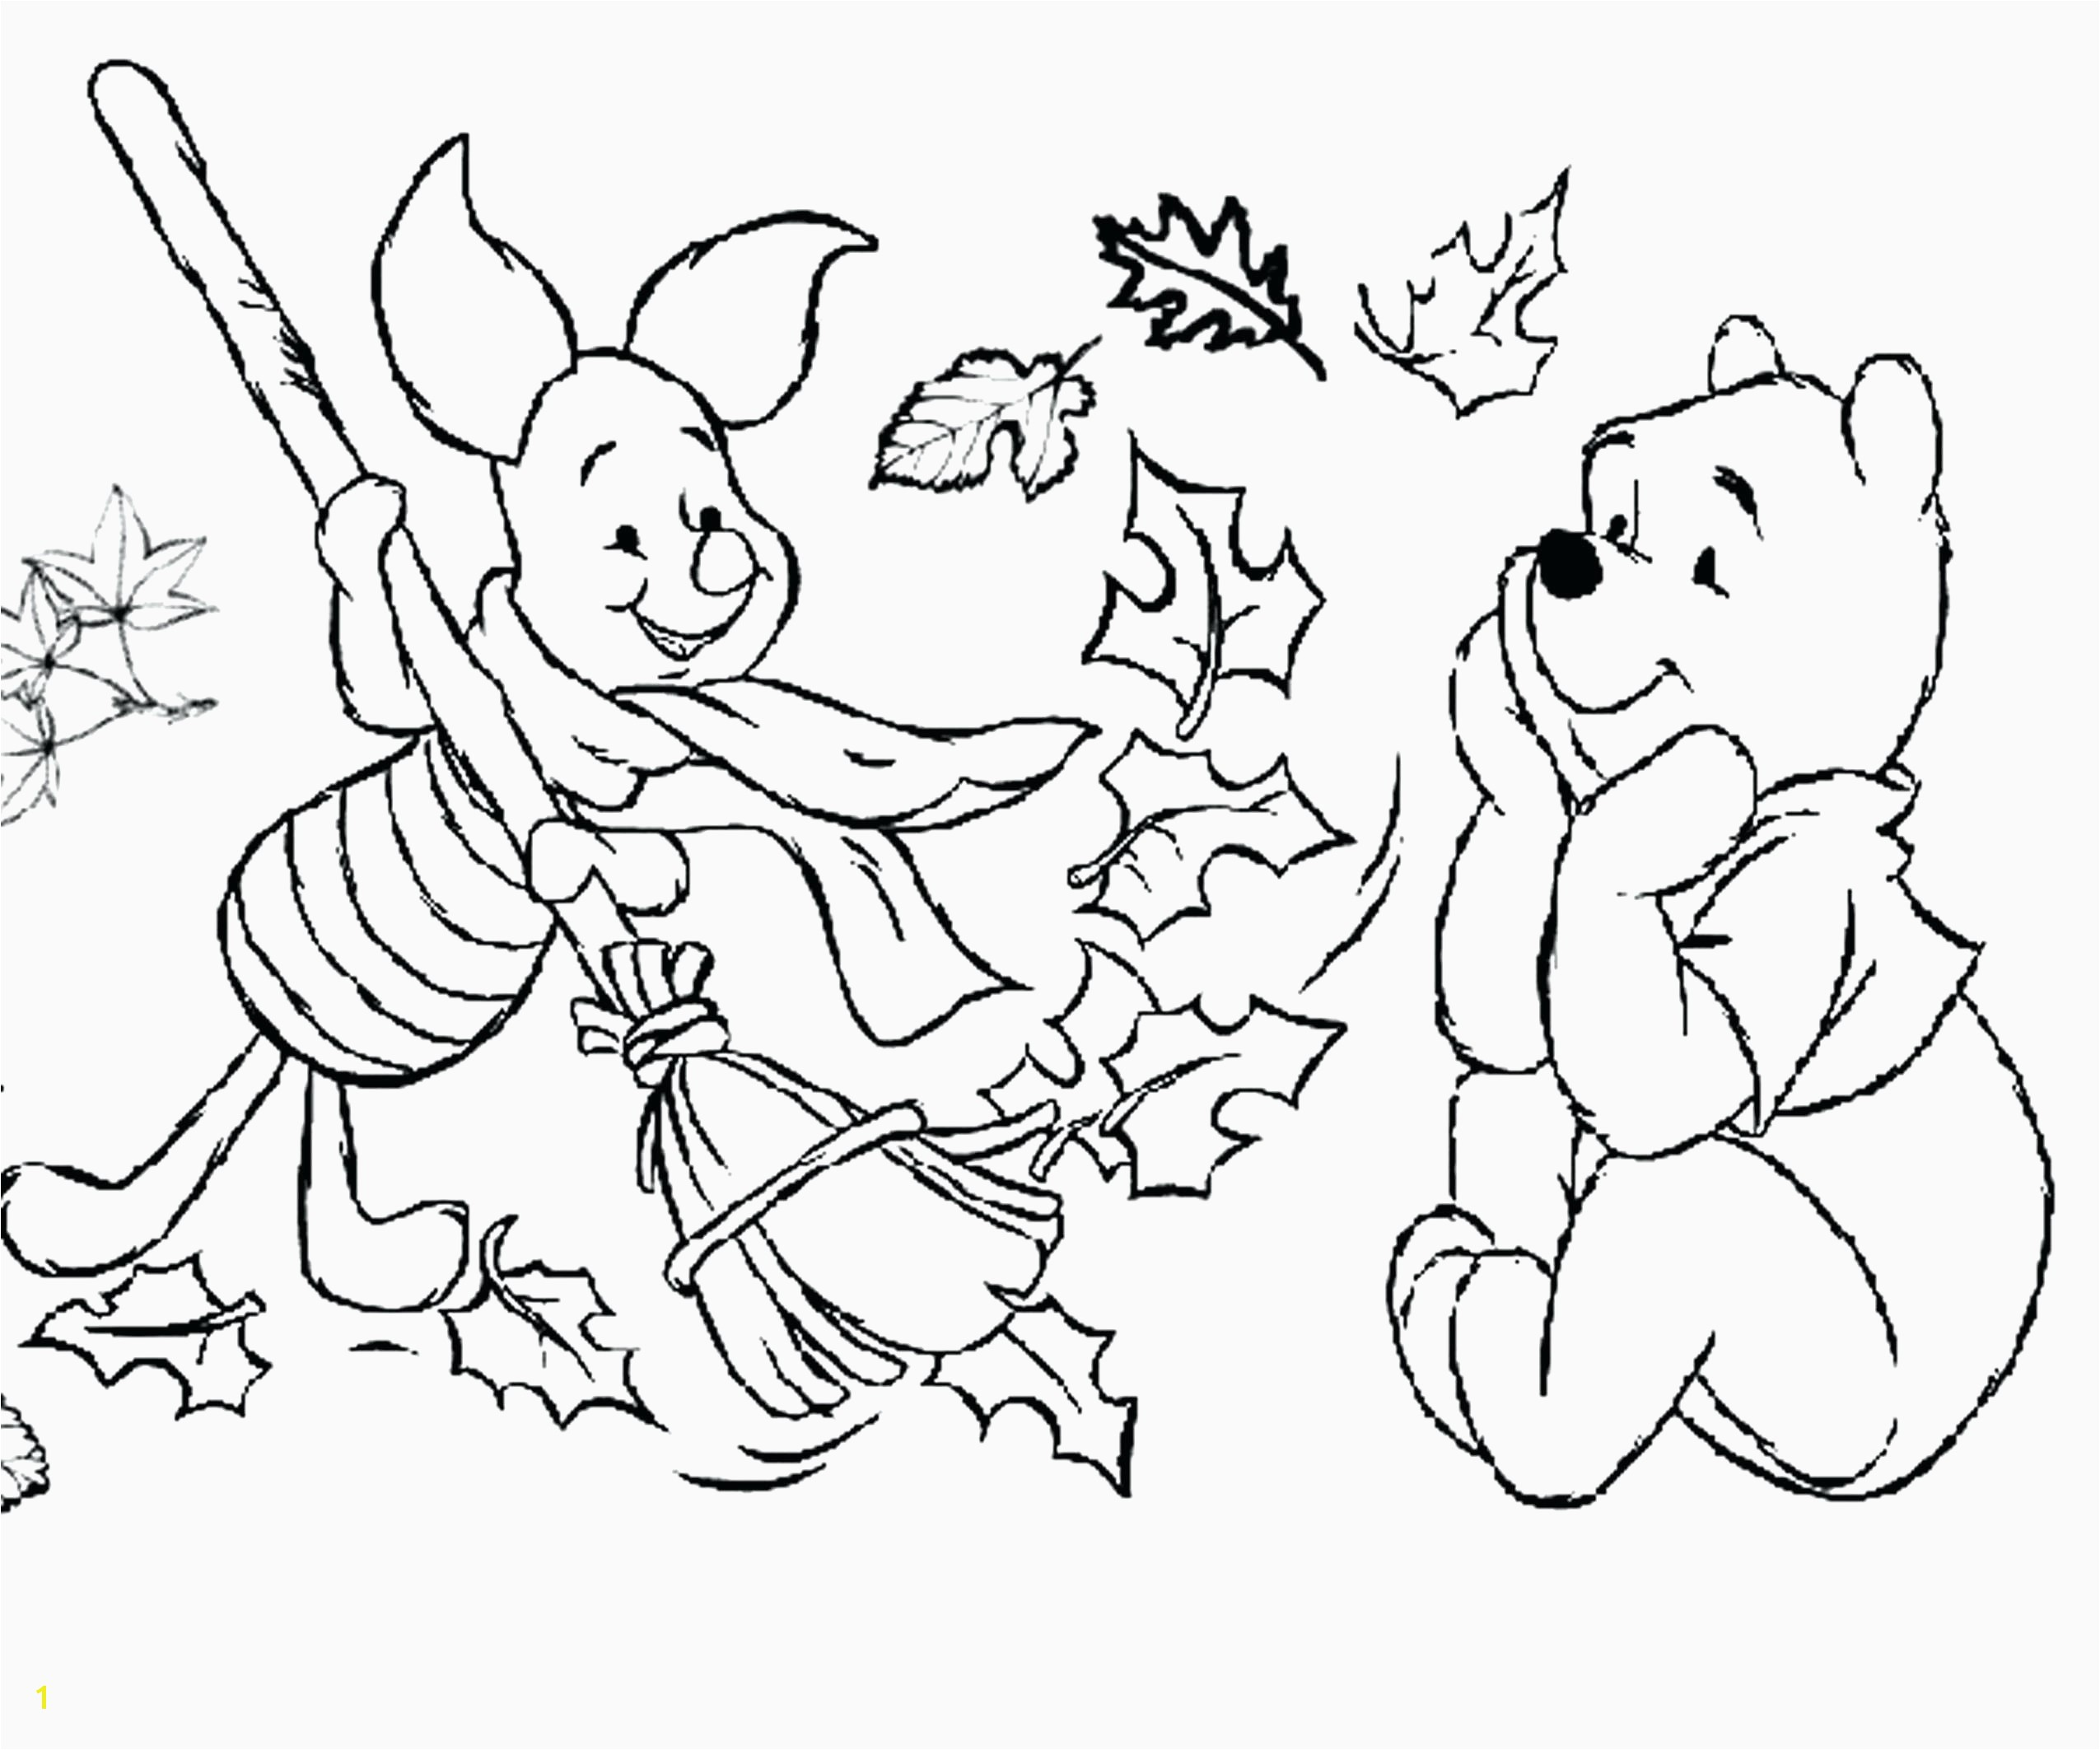 print coloring sheet fall coloring pages 0d page for kids inspirational kidsboys preschool colouring fancy books